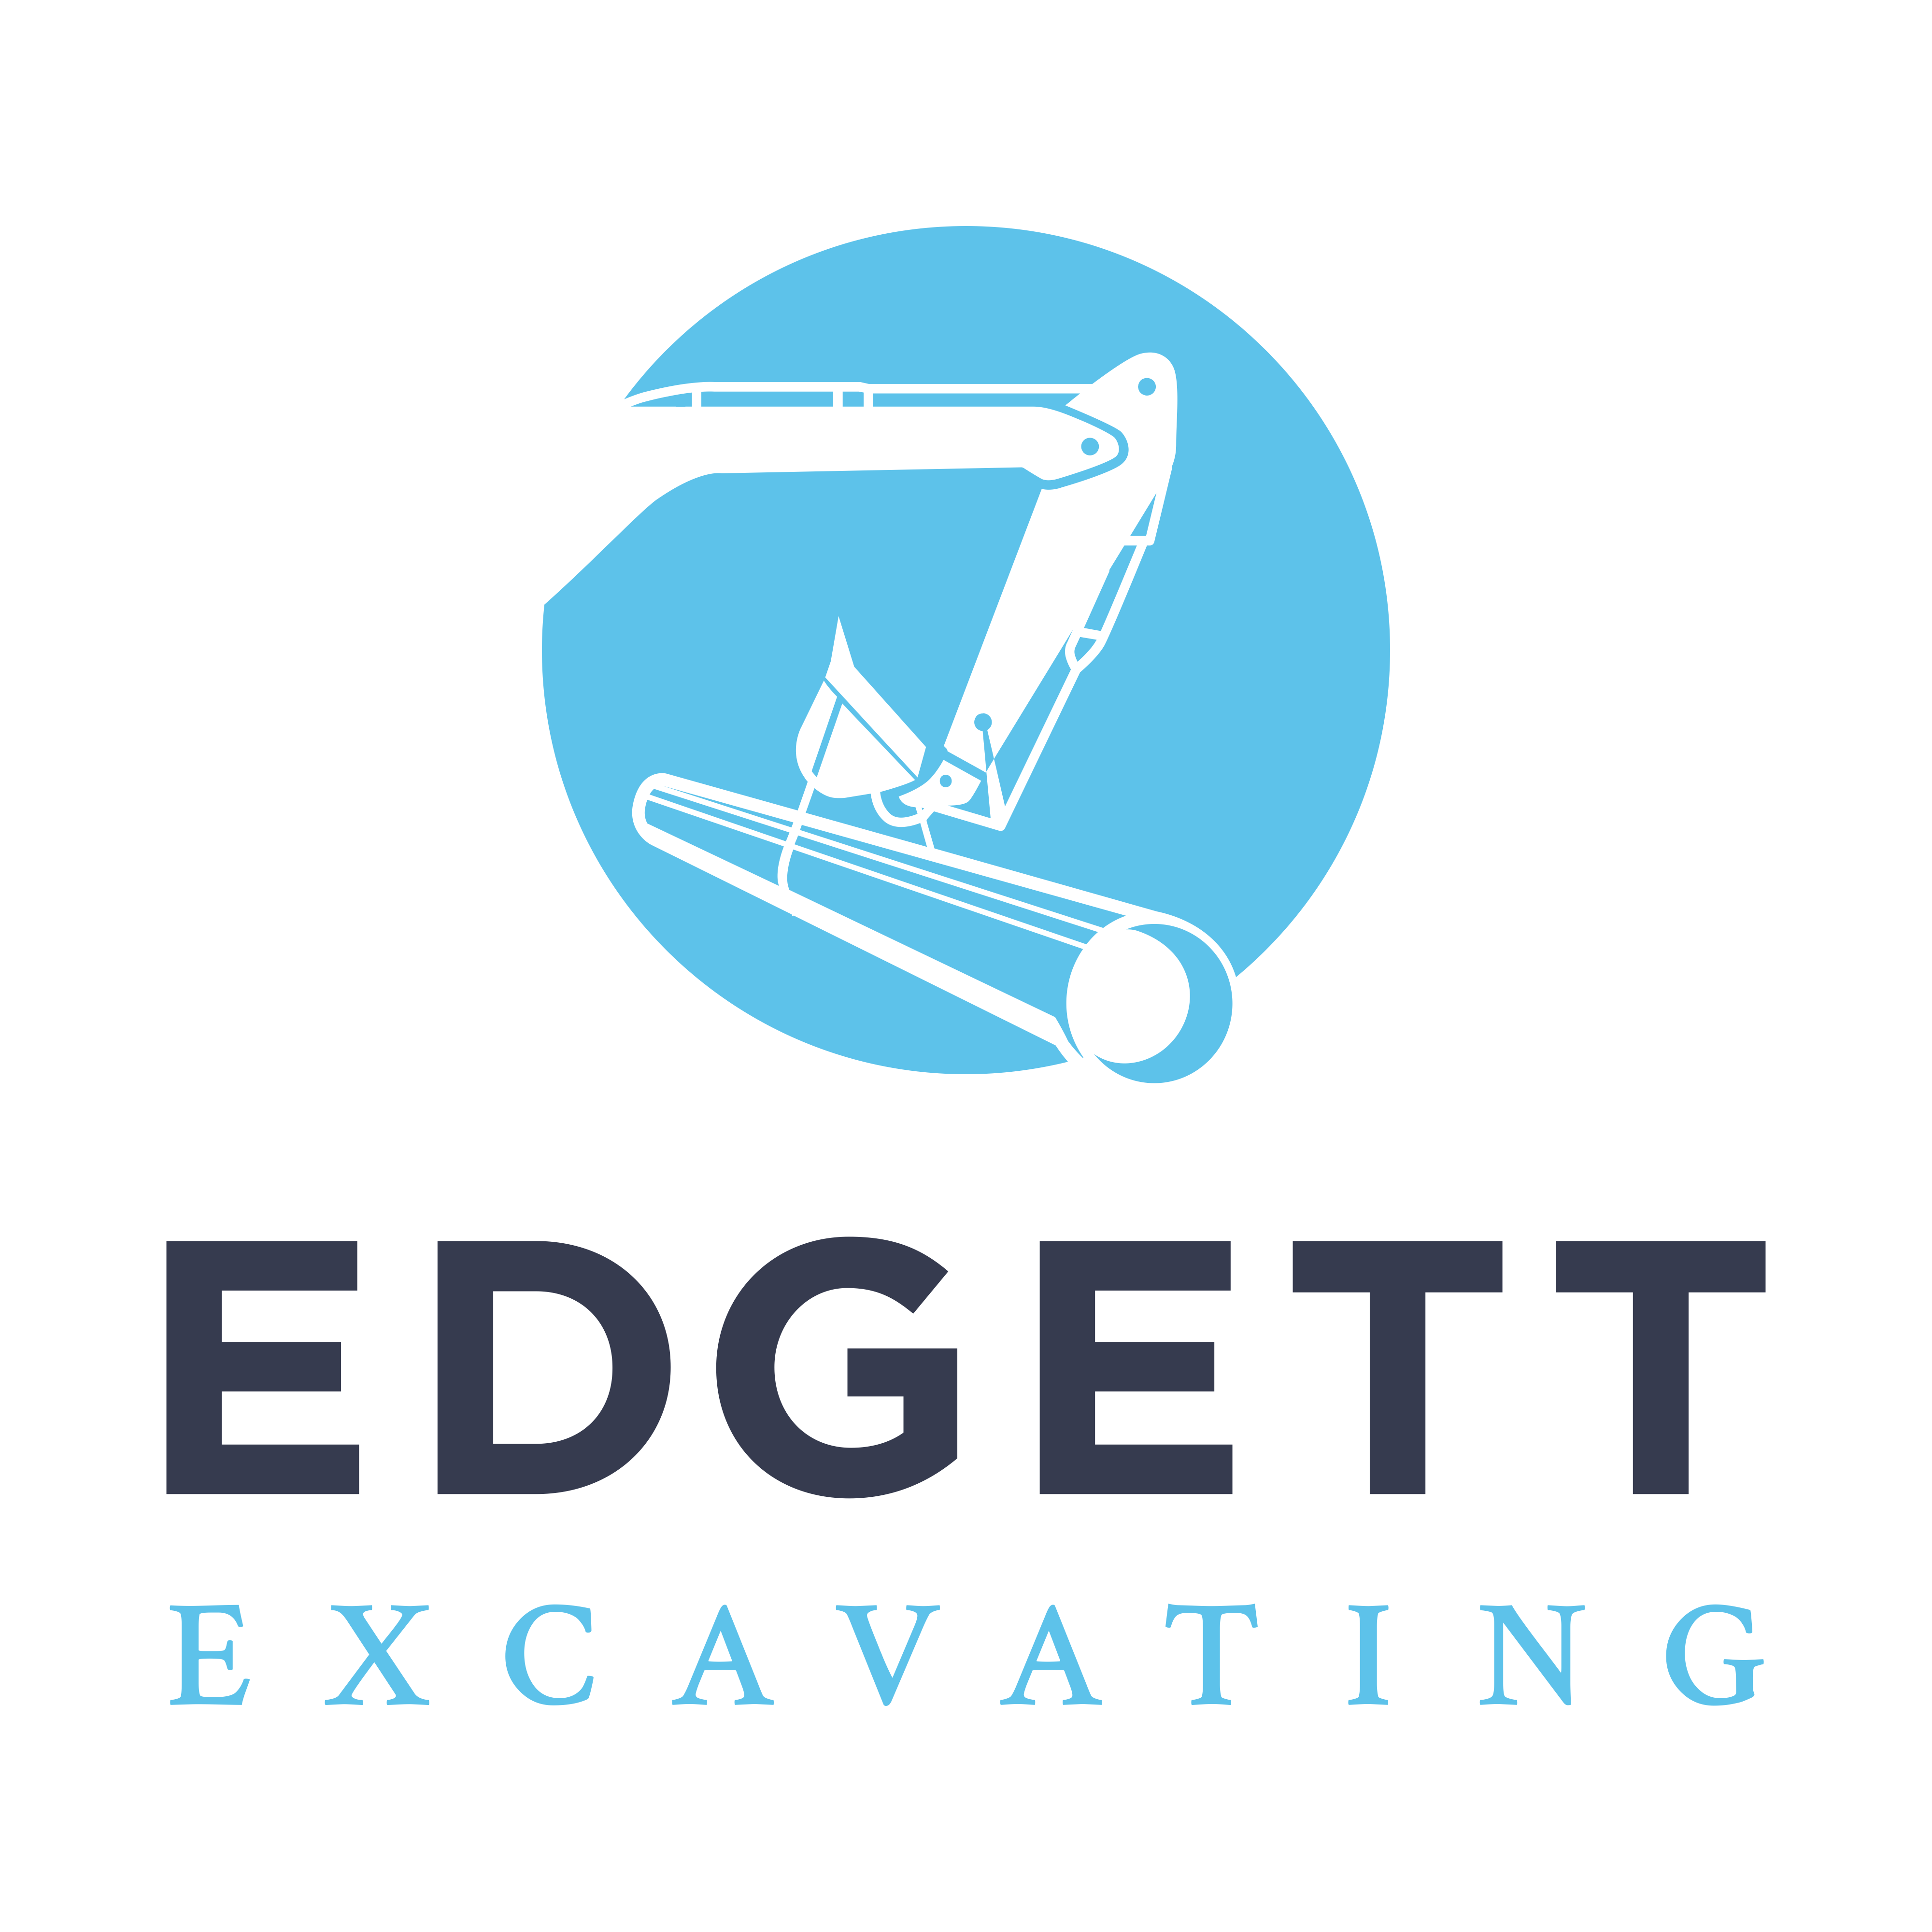 Edgett Excavating Ltd